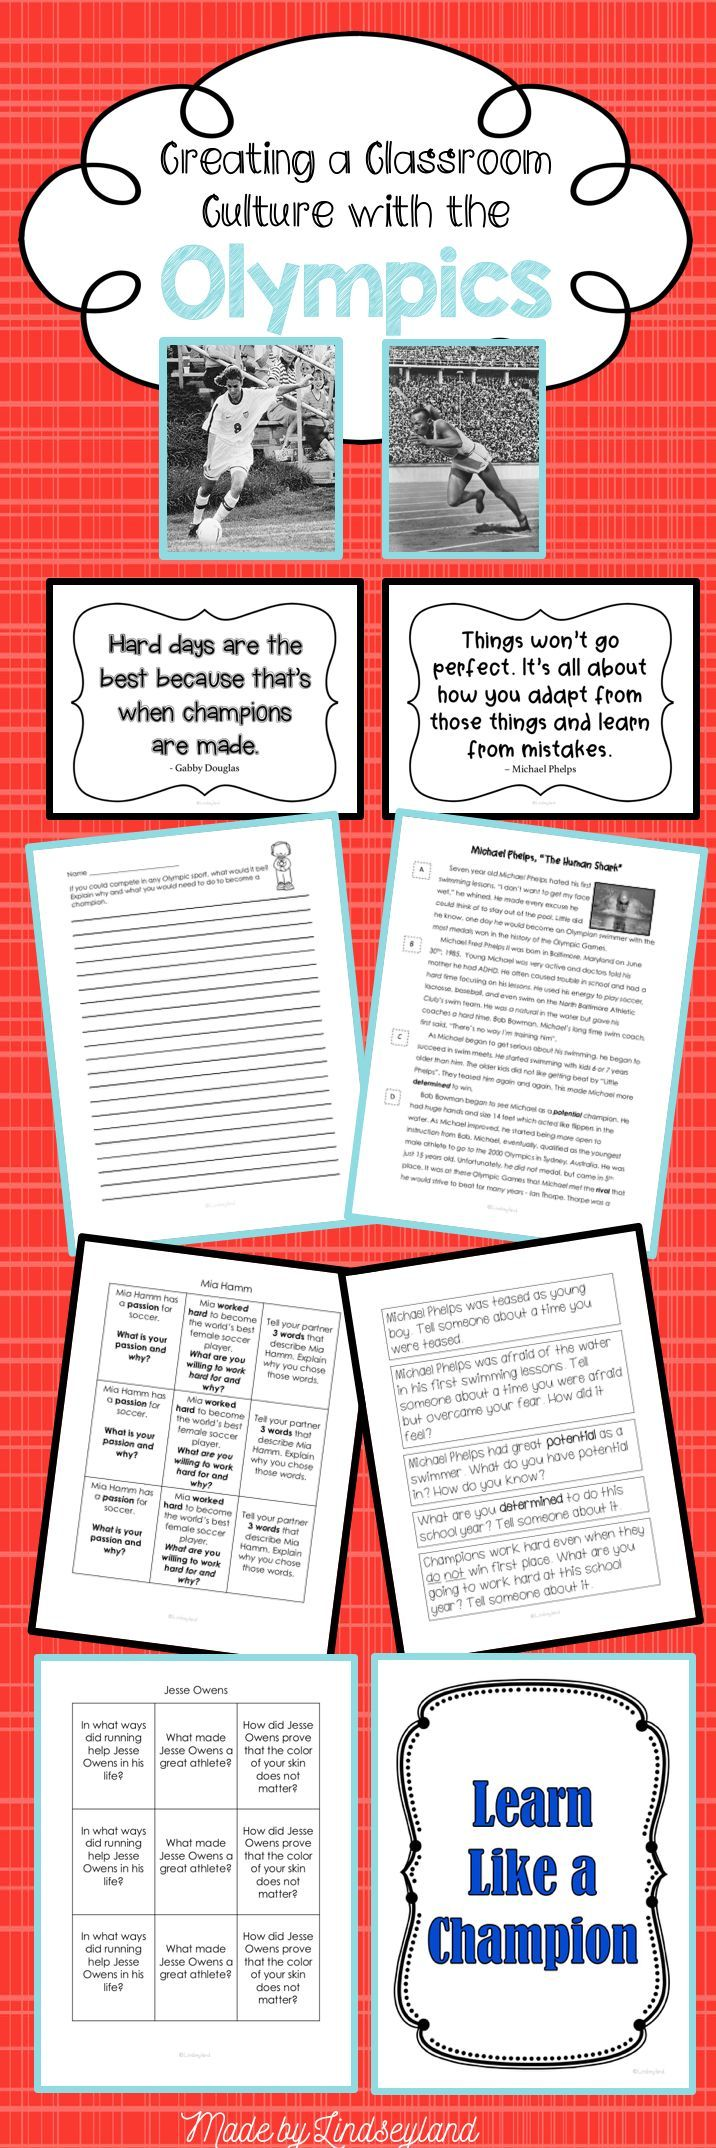 """Olympic Summer Games of 2016 are the perfect springboard for building classroom culture. This unit contains complete lesson plans for studying the Olympics and famous athletes as a model for learning with grit and passion. Designed around 7 informational articles that will spur on discussions as to how your students can """"Learn Like a Champion"""". Made by Lindseyland Learning."""